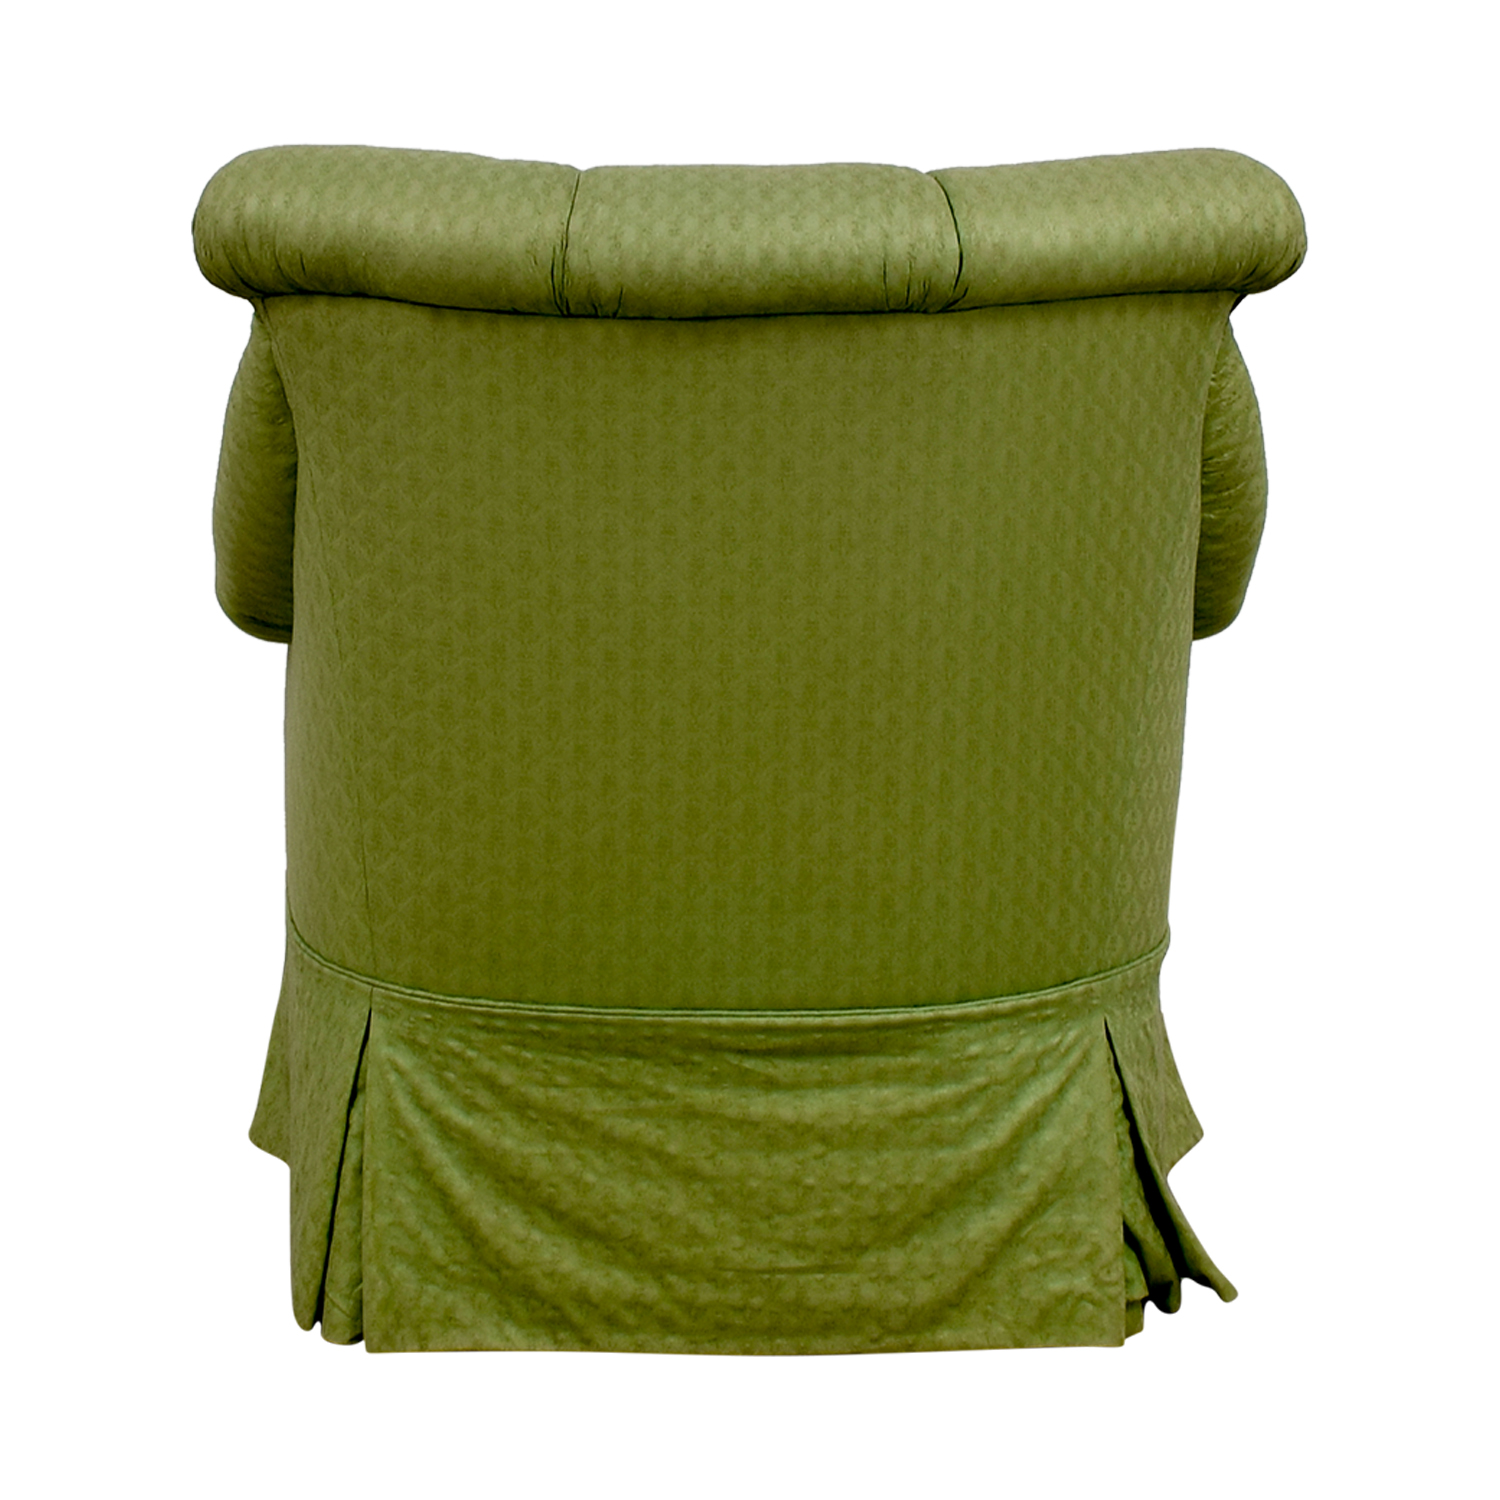 Furniture Masters Furniture Masters Green Skirted Armchair